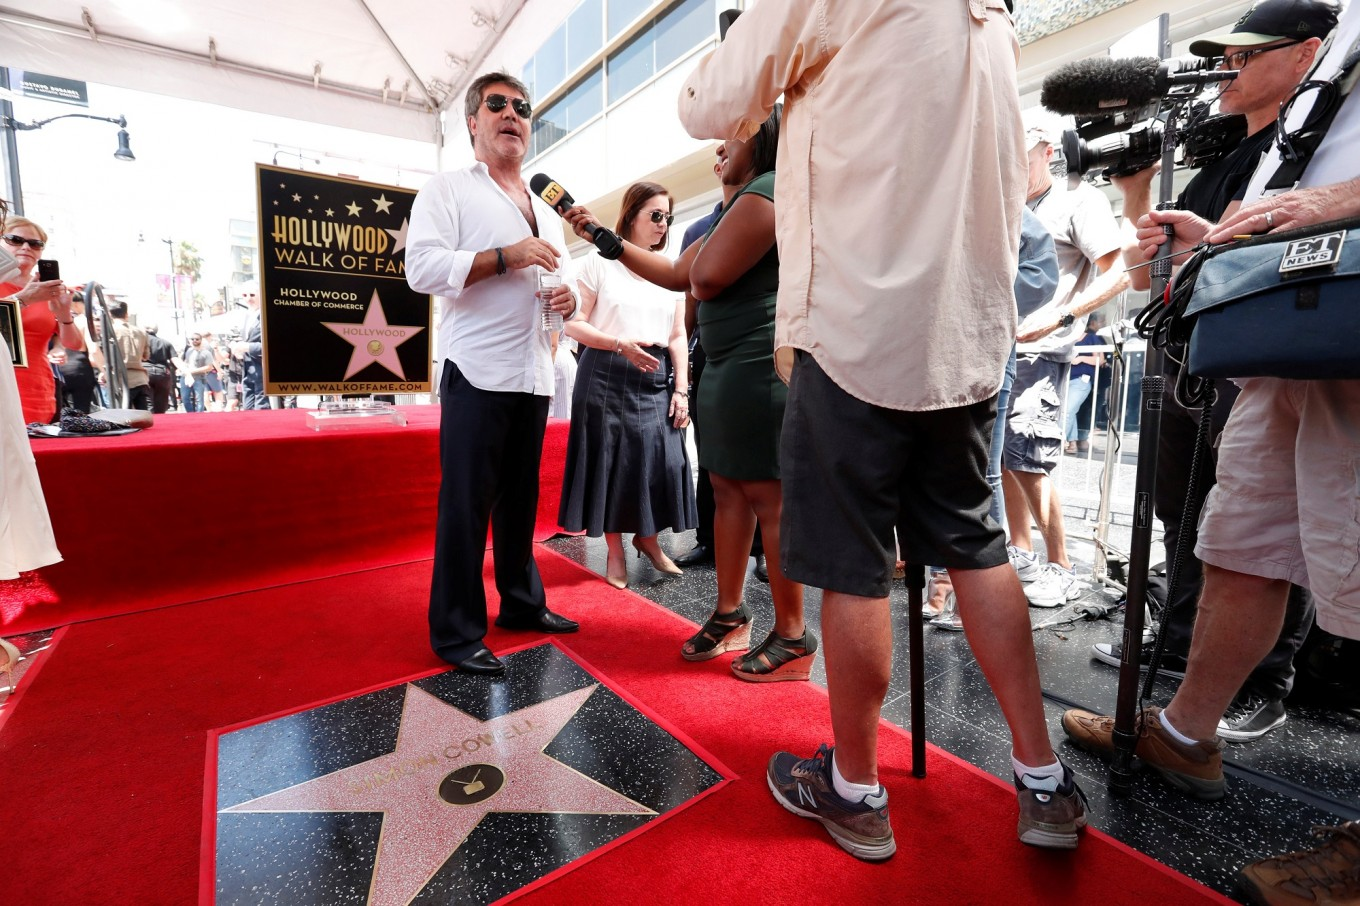 Star maker Simon Cowell gets his place on Hollywood Walk of Fame